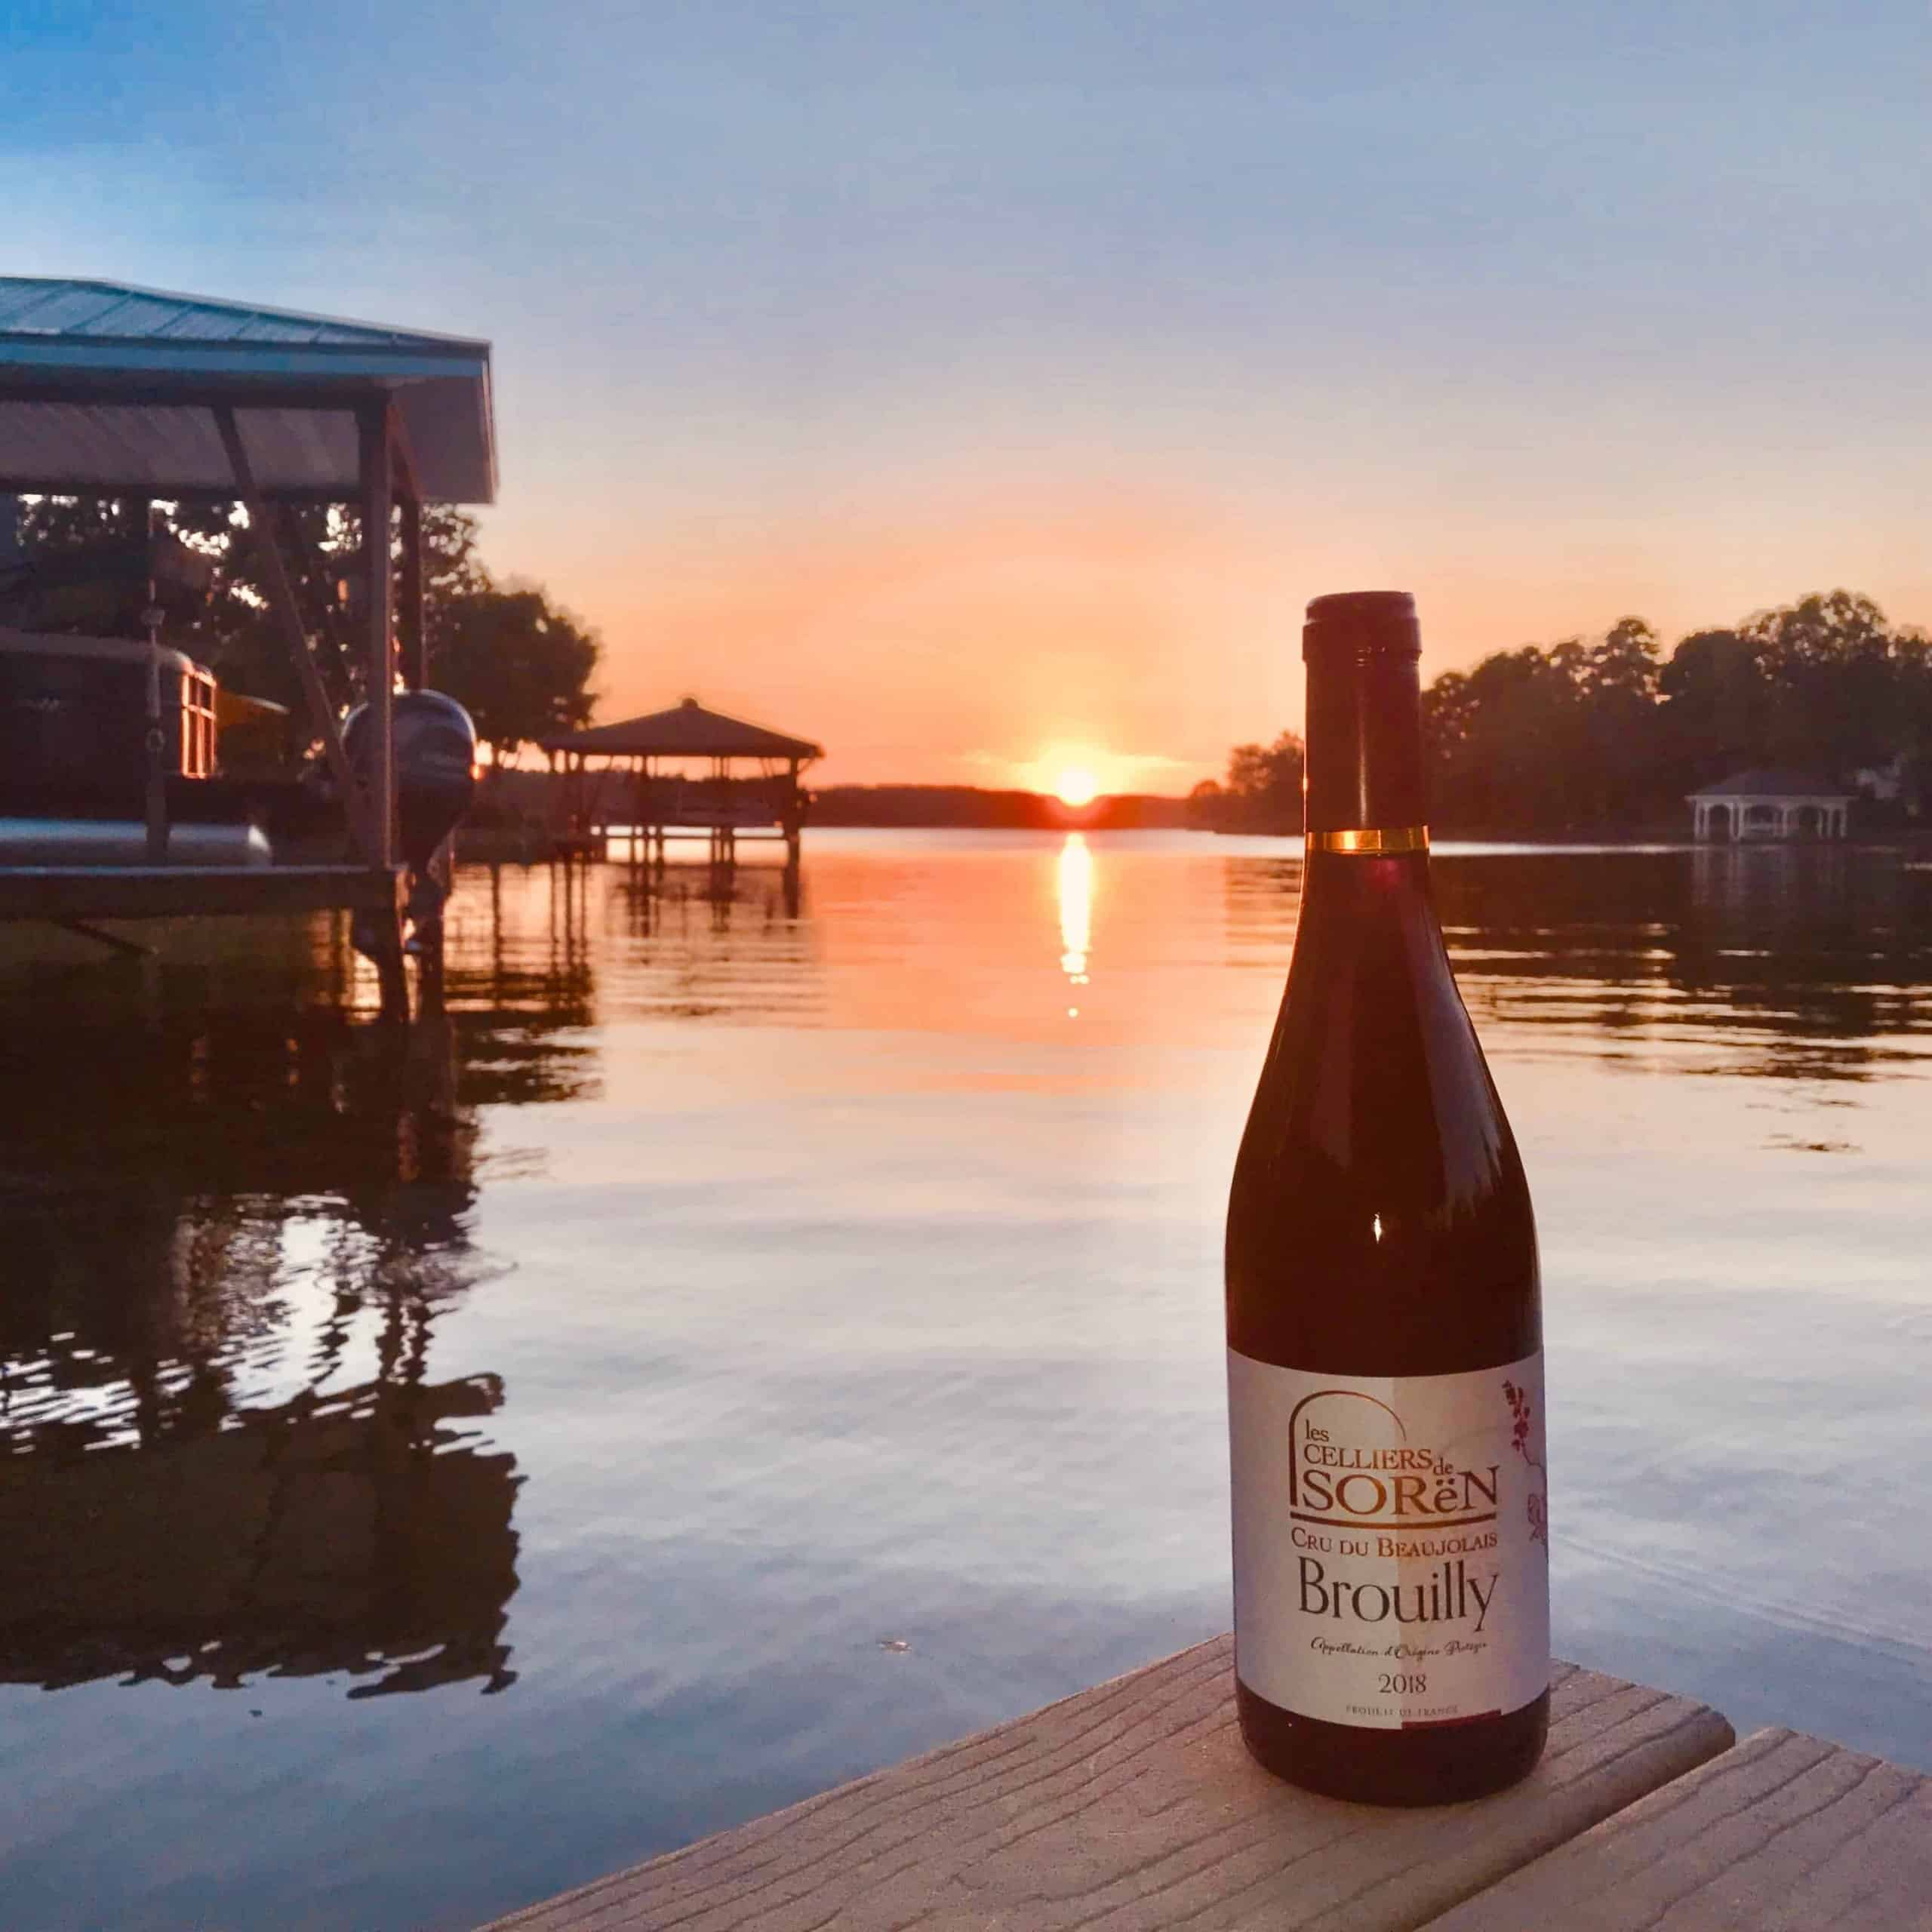 An image of Les Celliers de Sorén Beaujolais wine lakeside at sunset